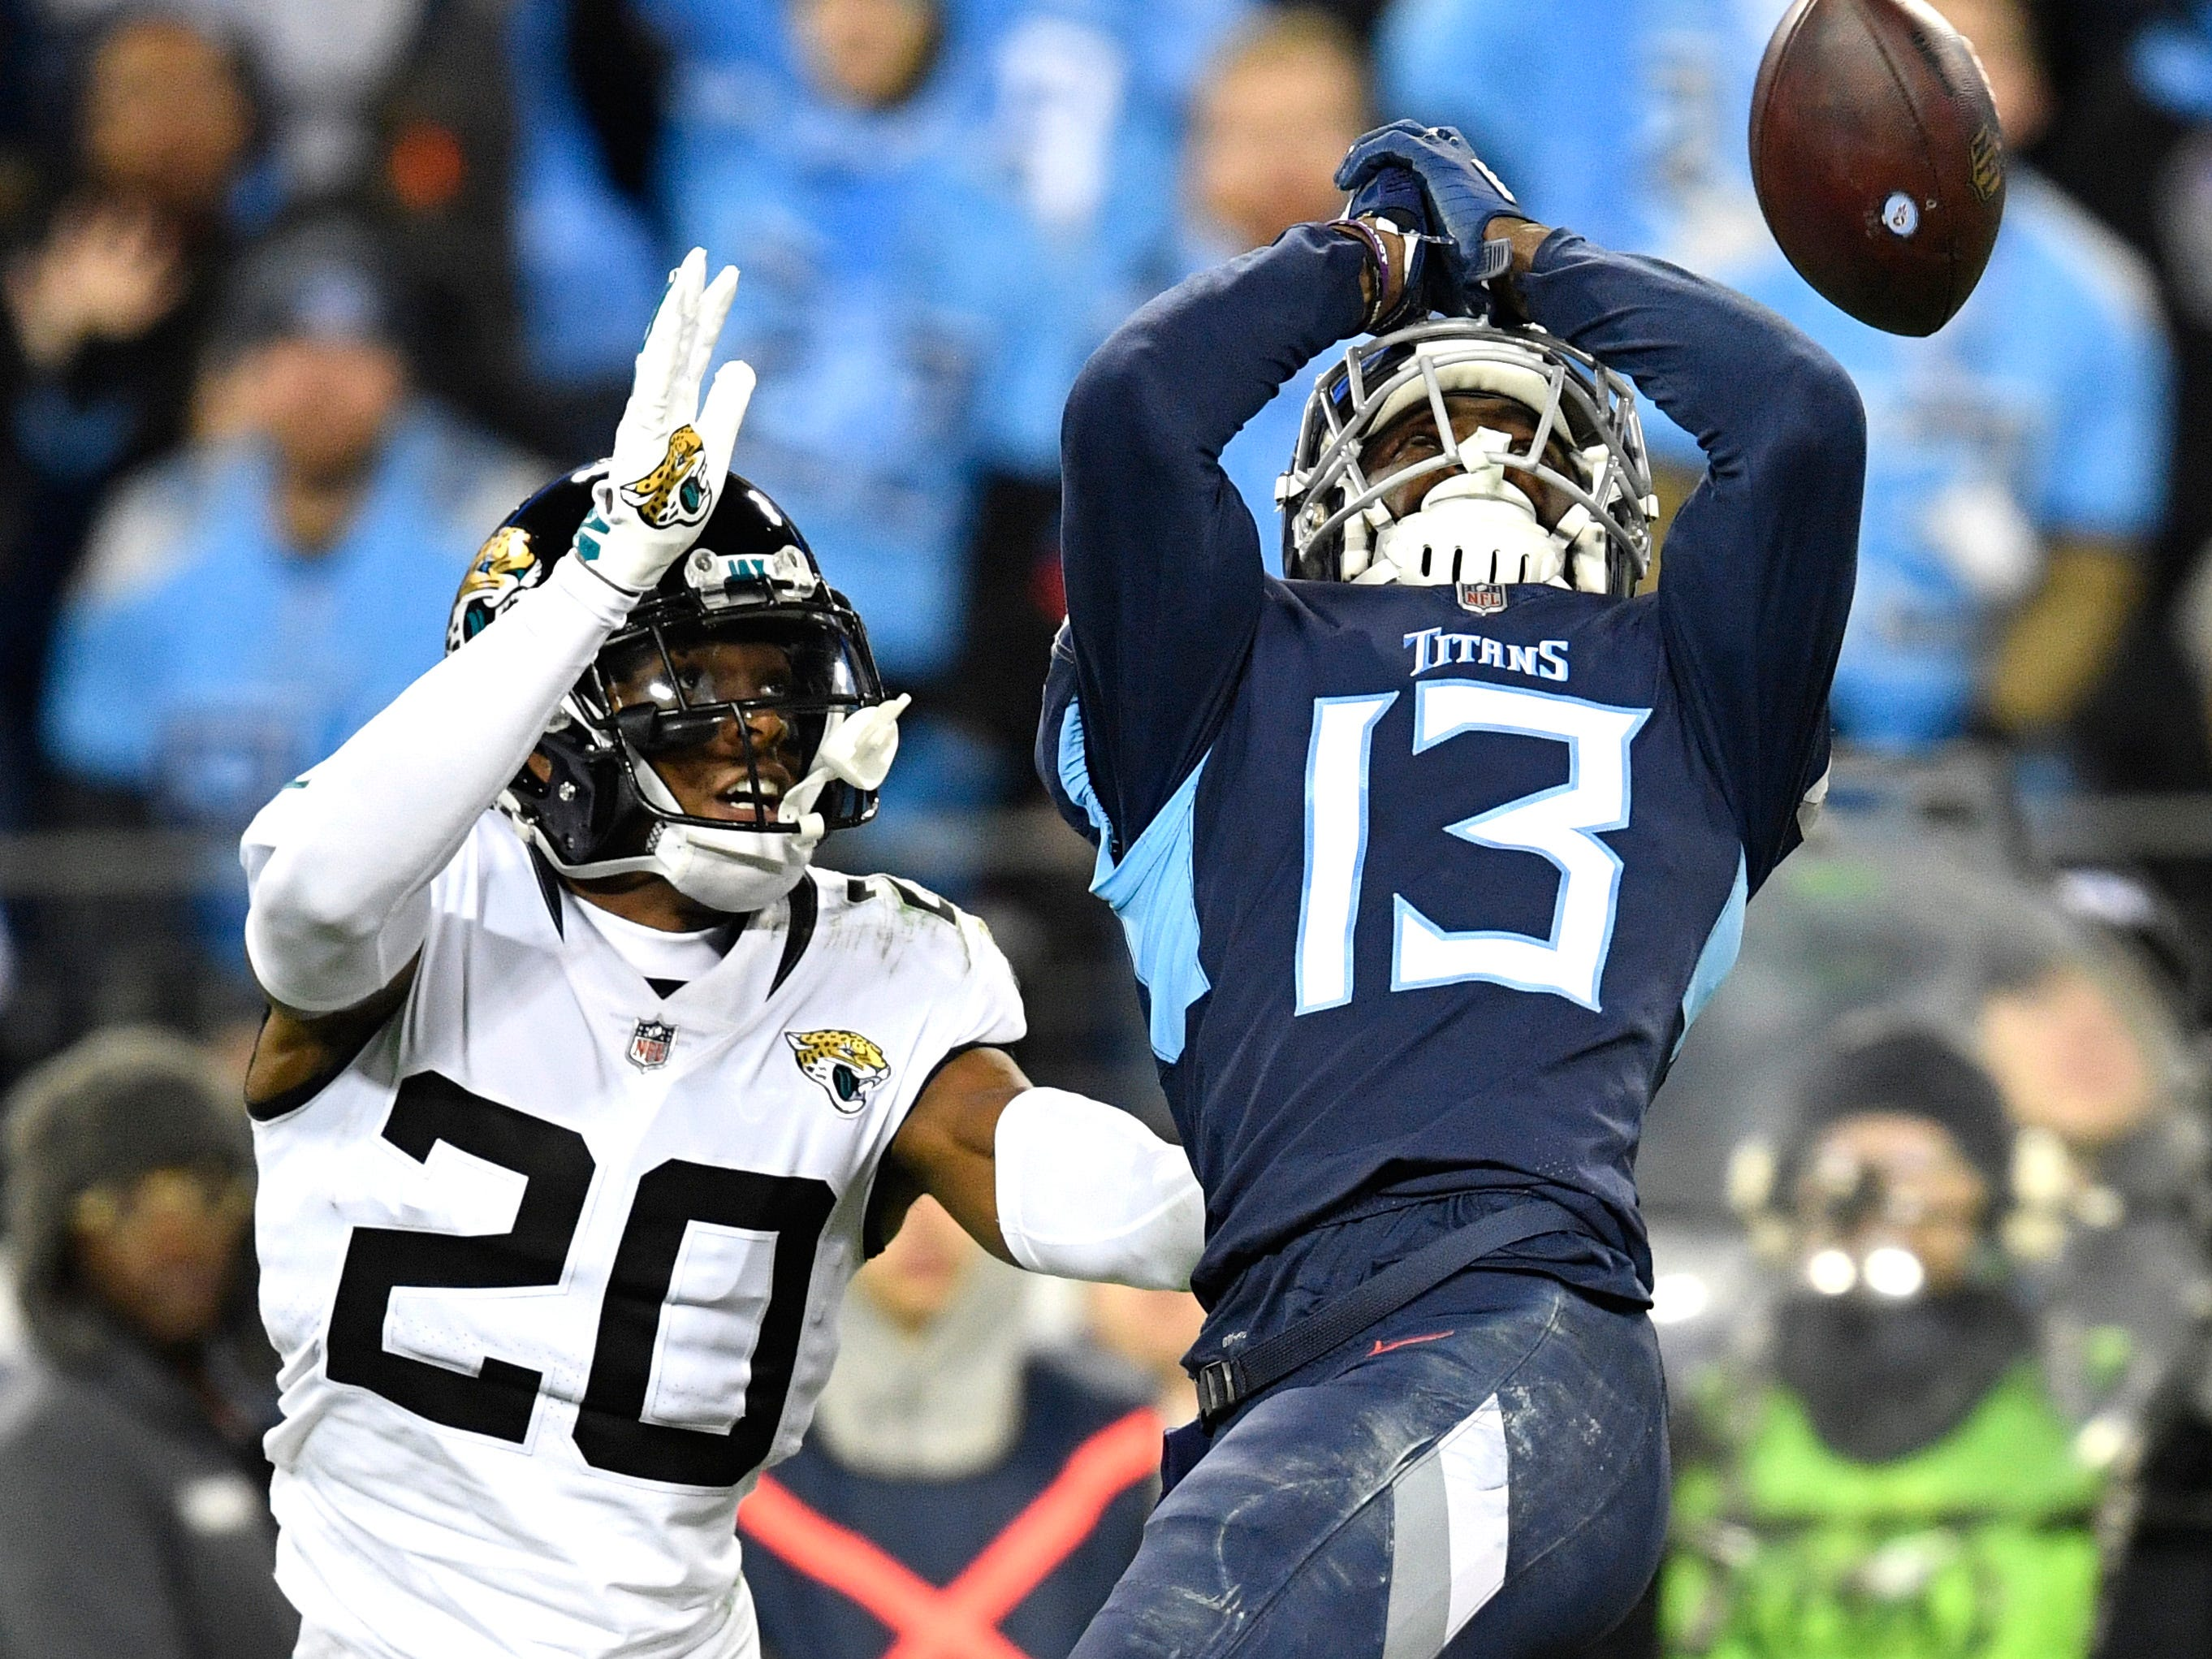 Jaguars cornerback Jalen Ramsey (20) breaks up a pass intended for Titans wide receiver Taywan Taylor (13) in the second quarter at Nissan Stadium Thursday, Dec. 6, 2018, in Nashville, Tenn.